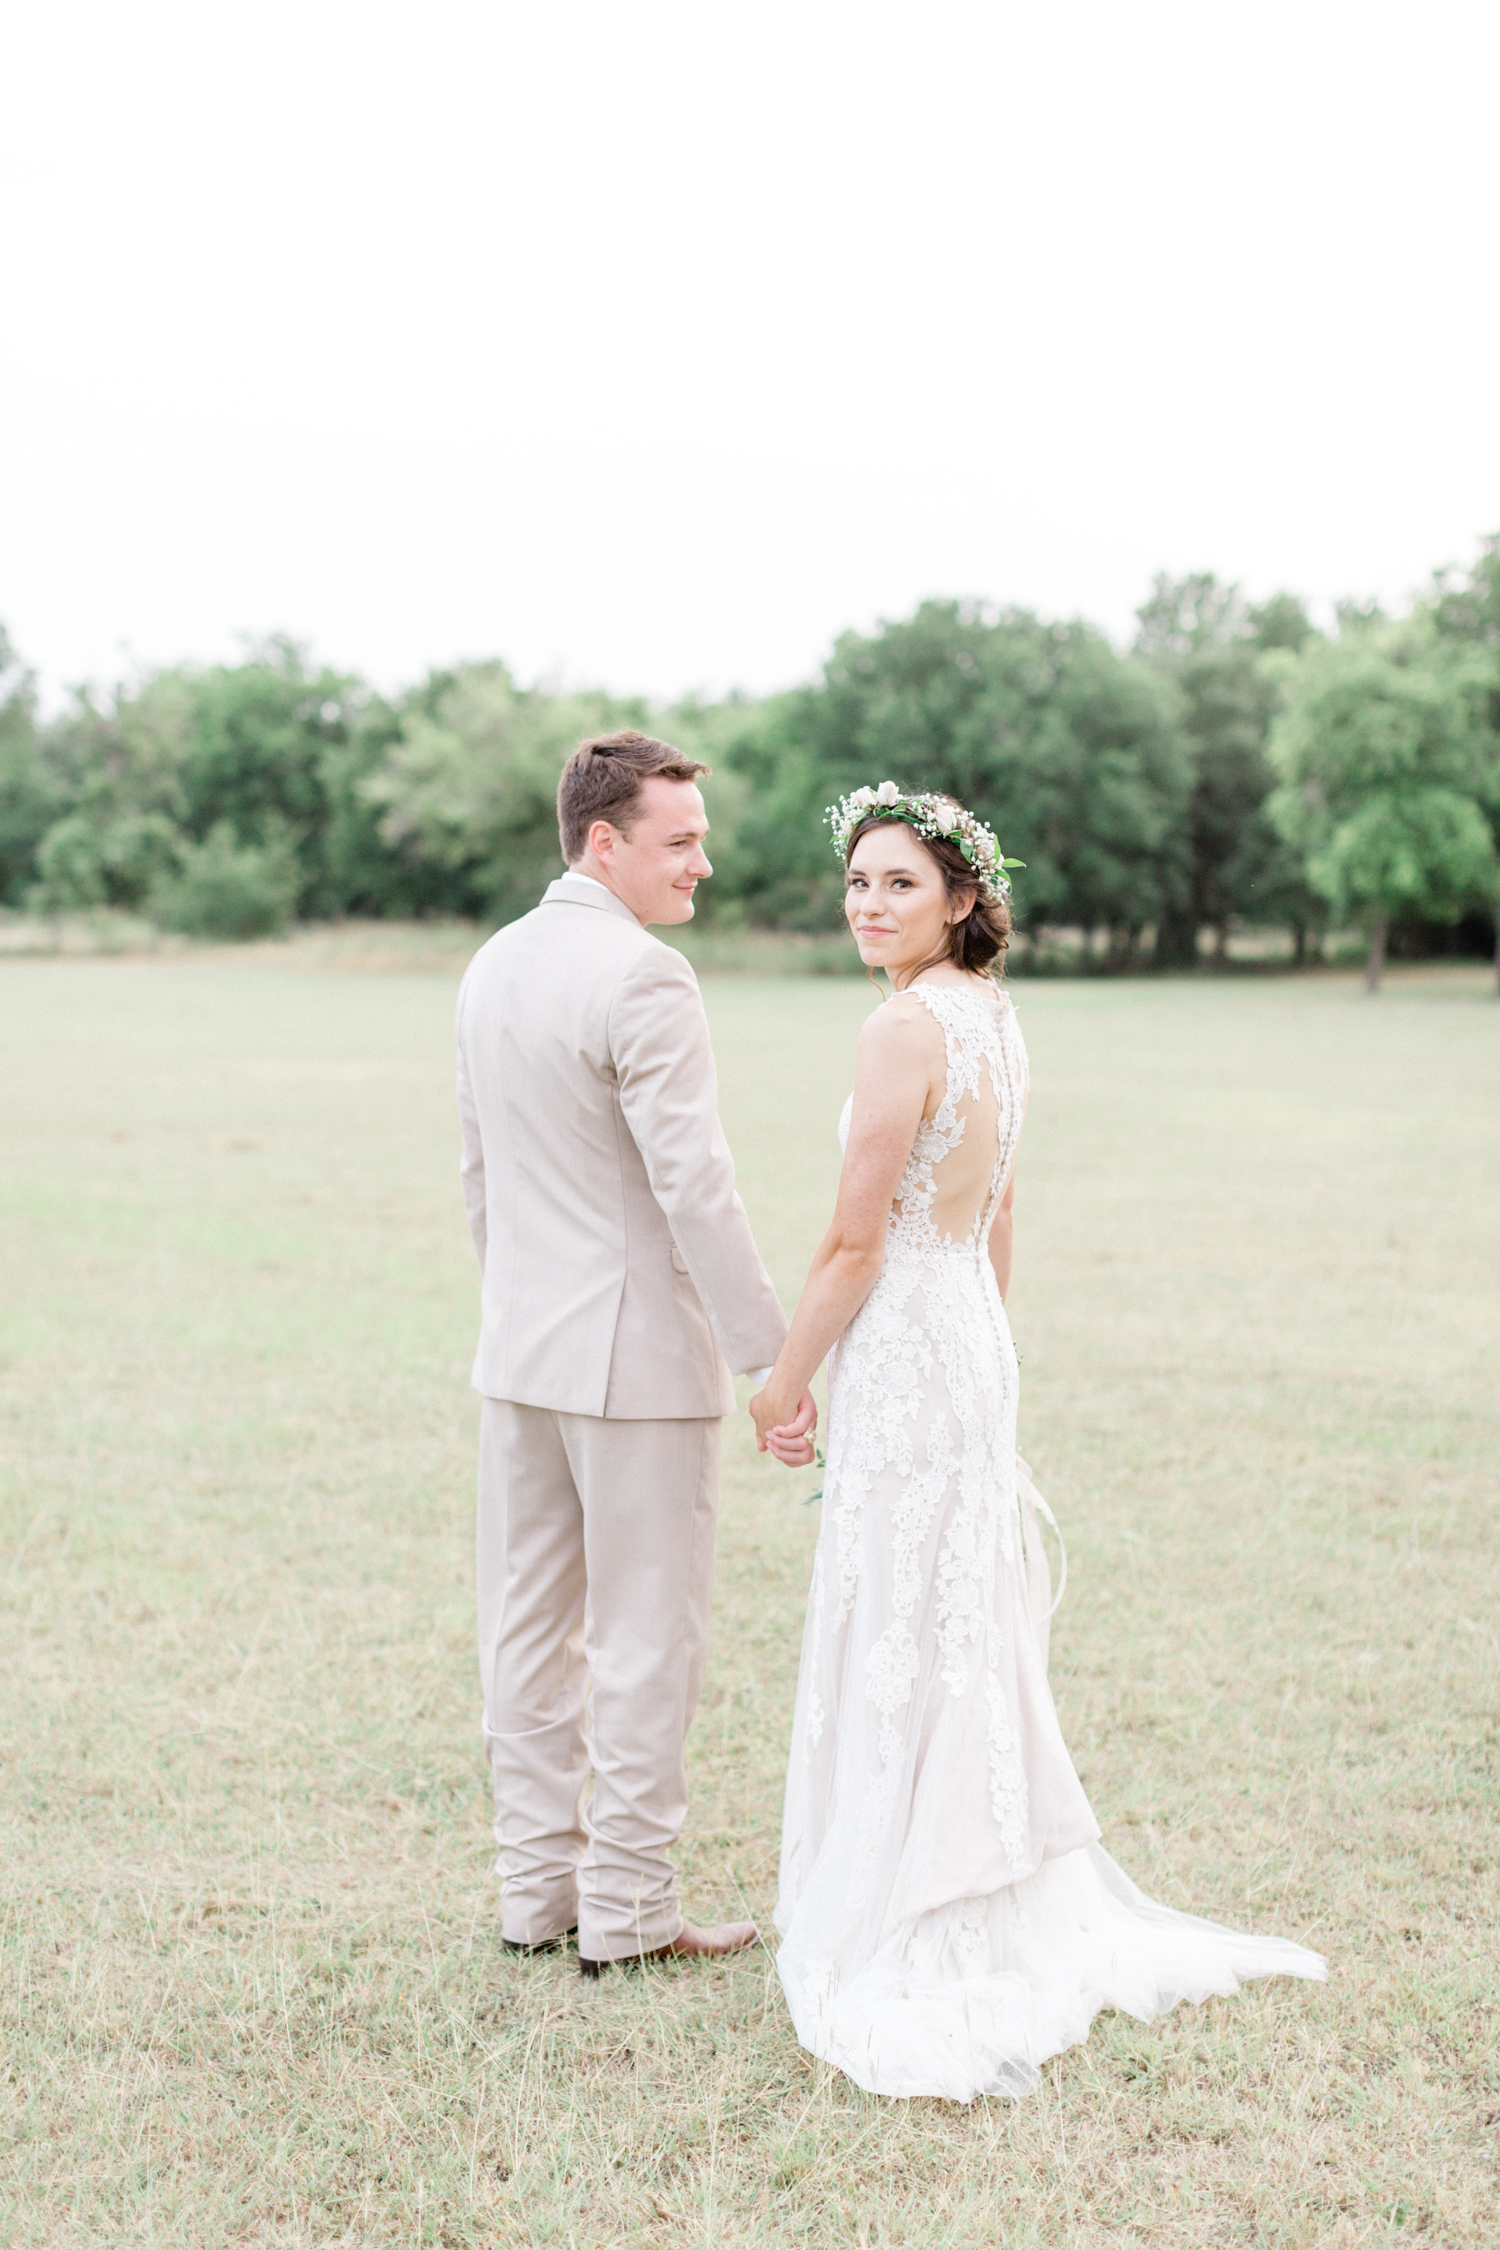 San Antonio Texas Wedding Engagement Photographer Photography Hill Country Texas Old Town Red Bud Hall Summer Blush Ivory Tan Rustic Classic Elegant Wedding San Antonio Austin Texas photographer 65